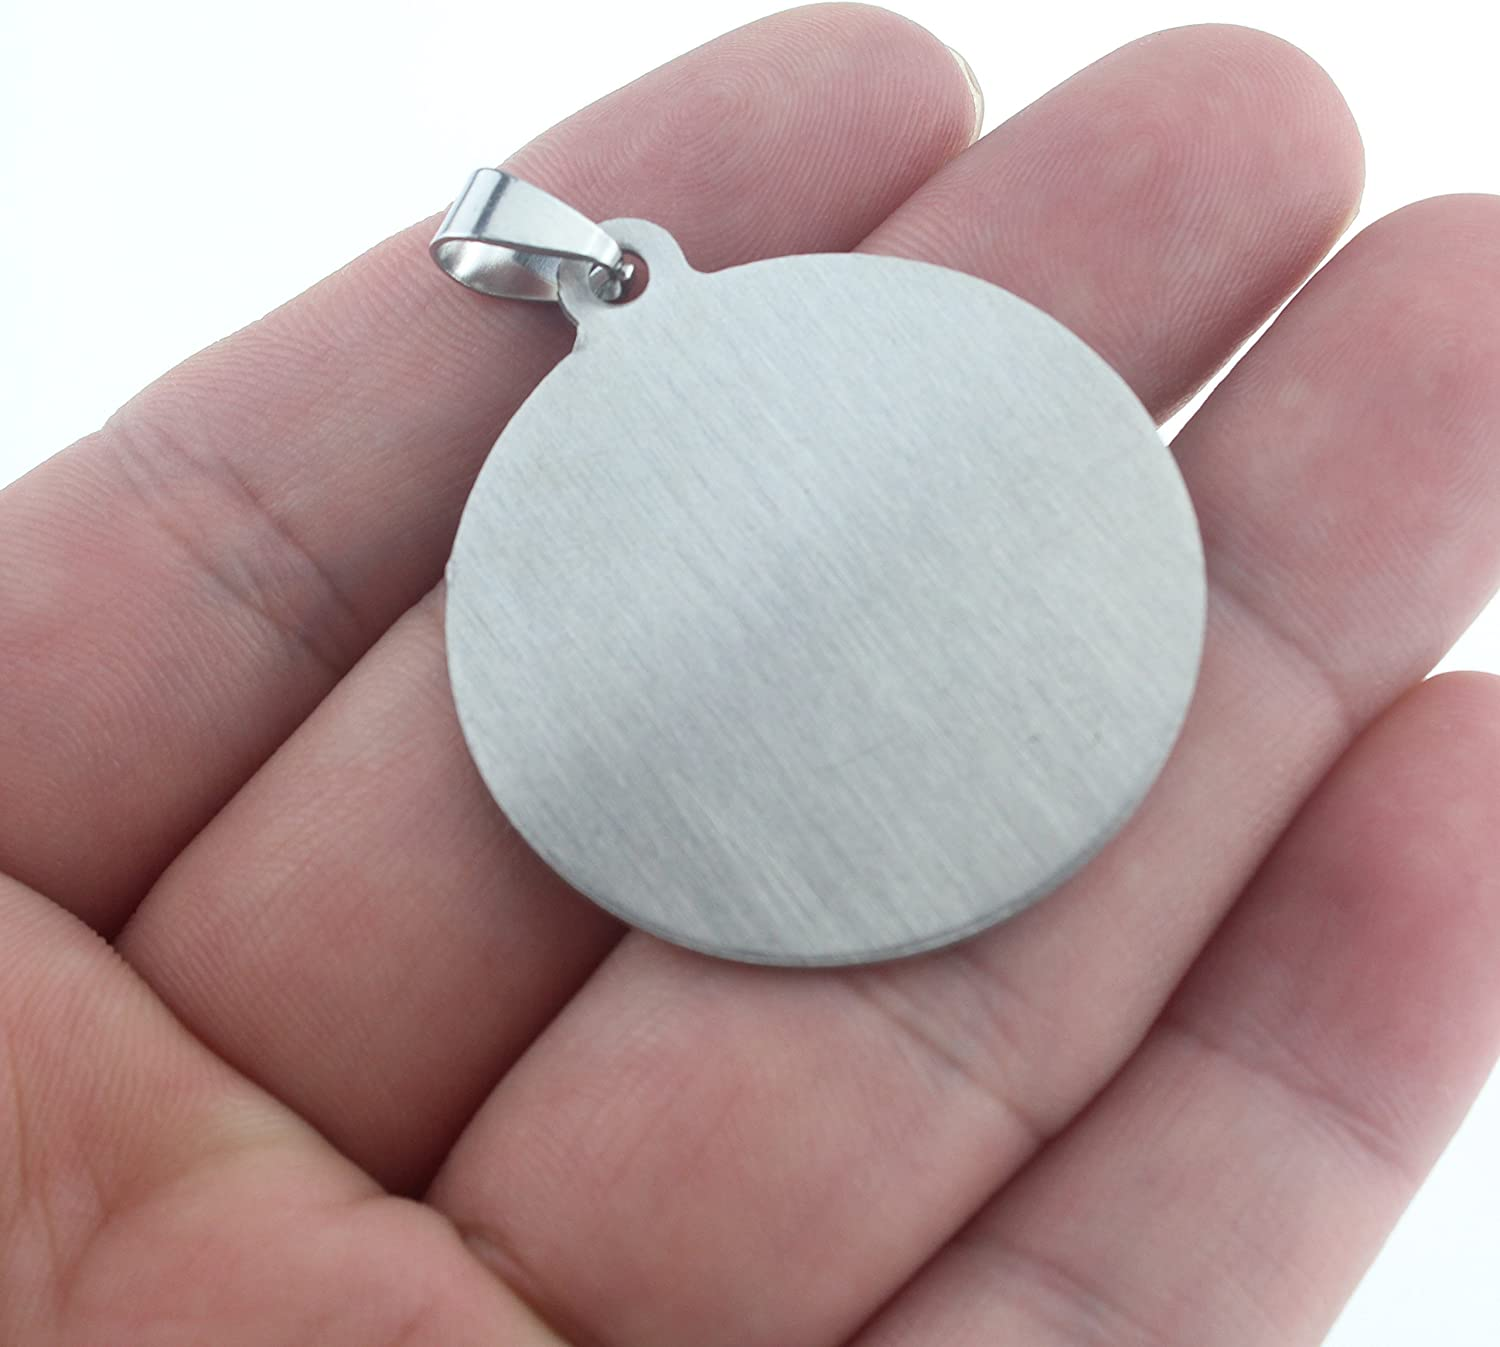 10 Stainless Steel Stamping Blanks Charms Dog Tag Blank Discs Etching Blank Engraving Blank 30 mm Discs no Hole